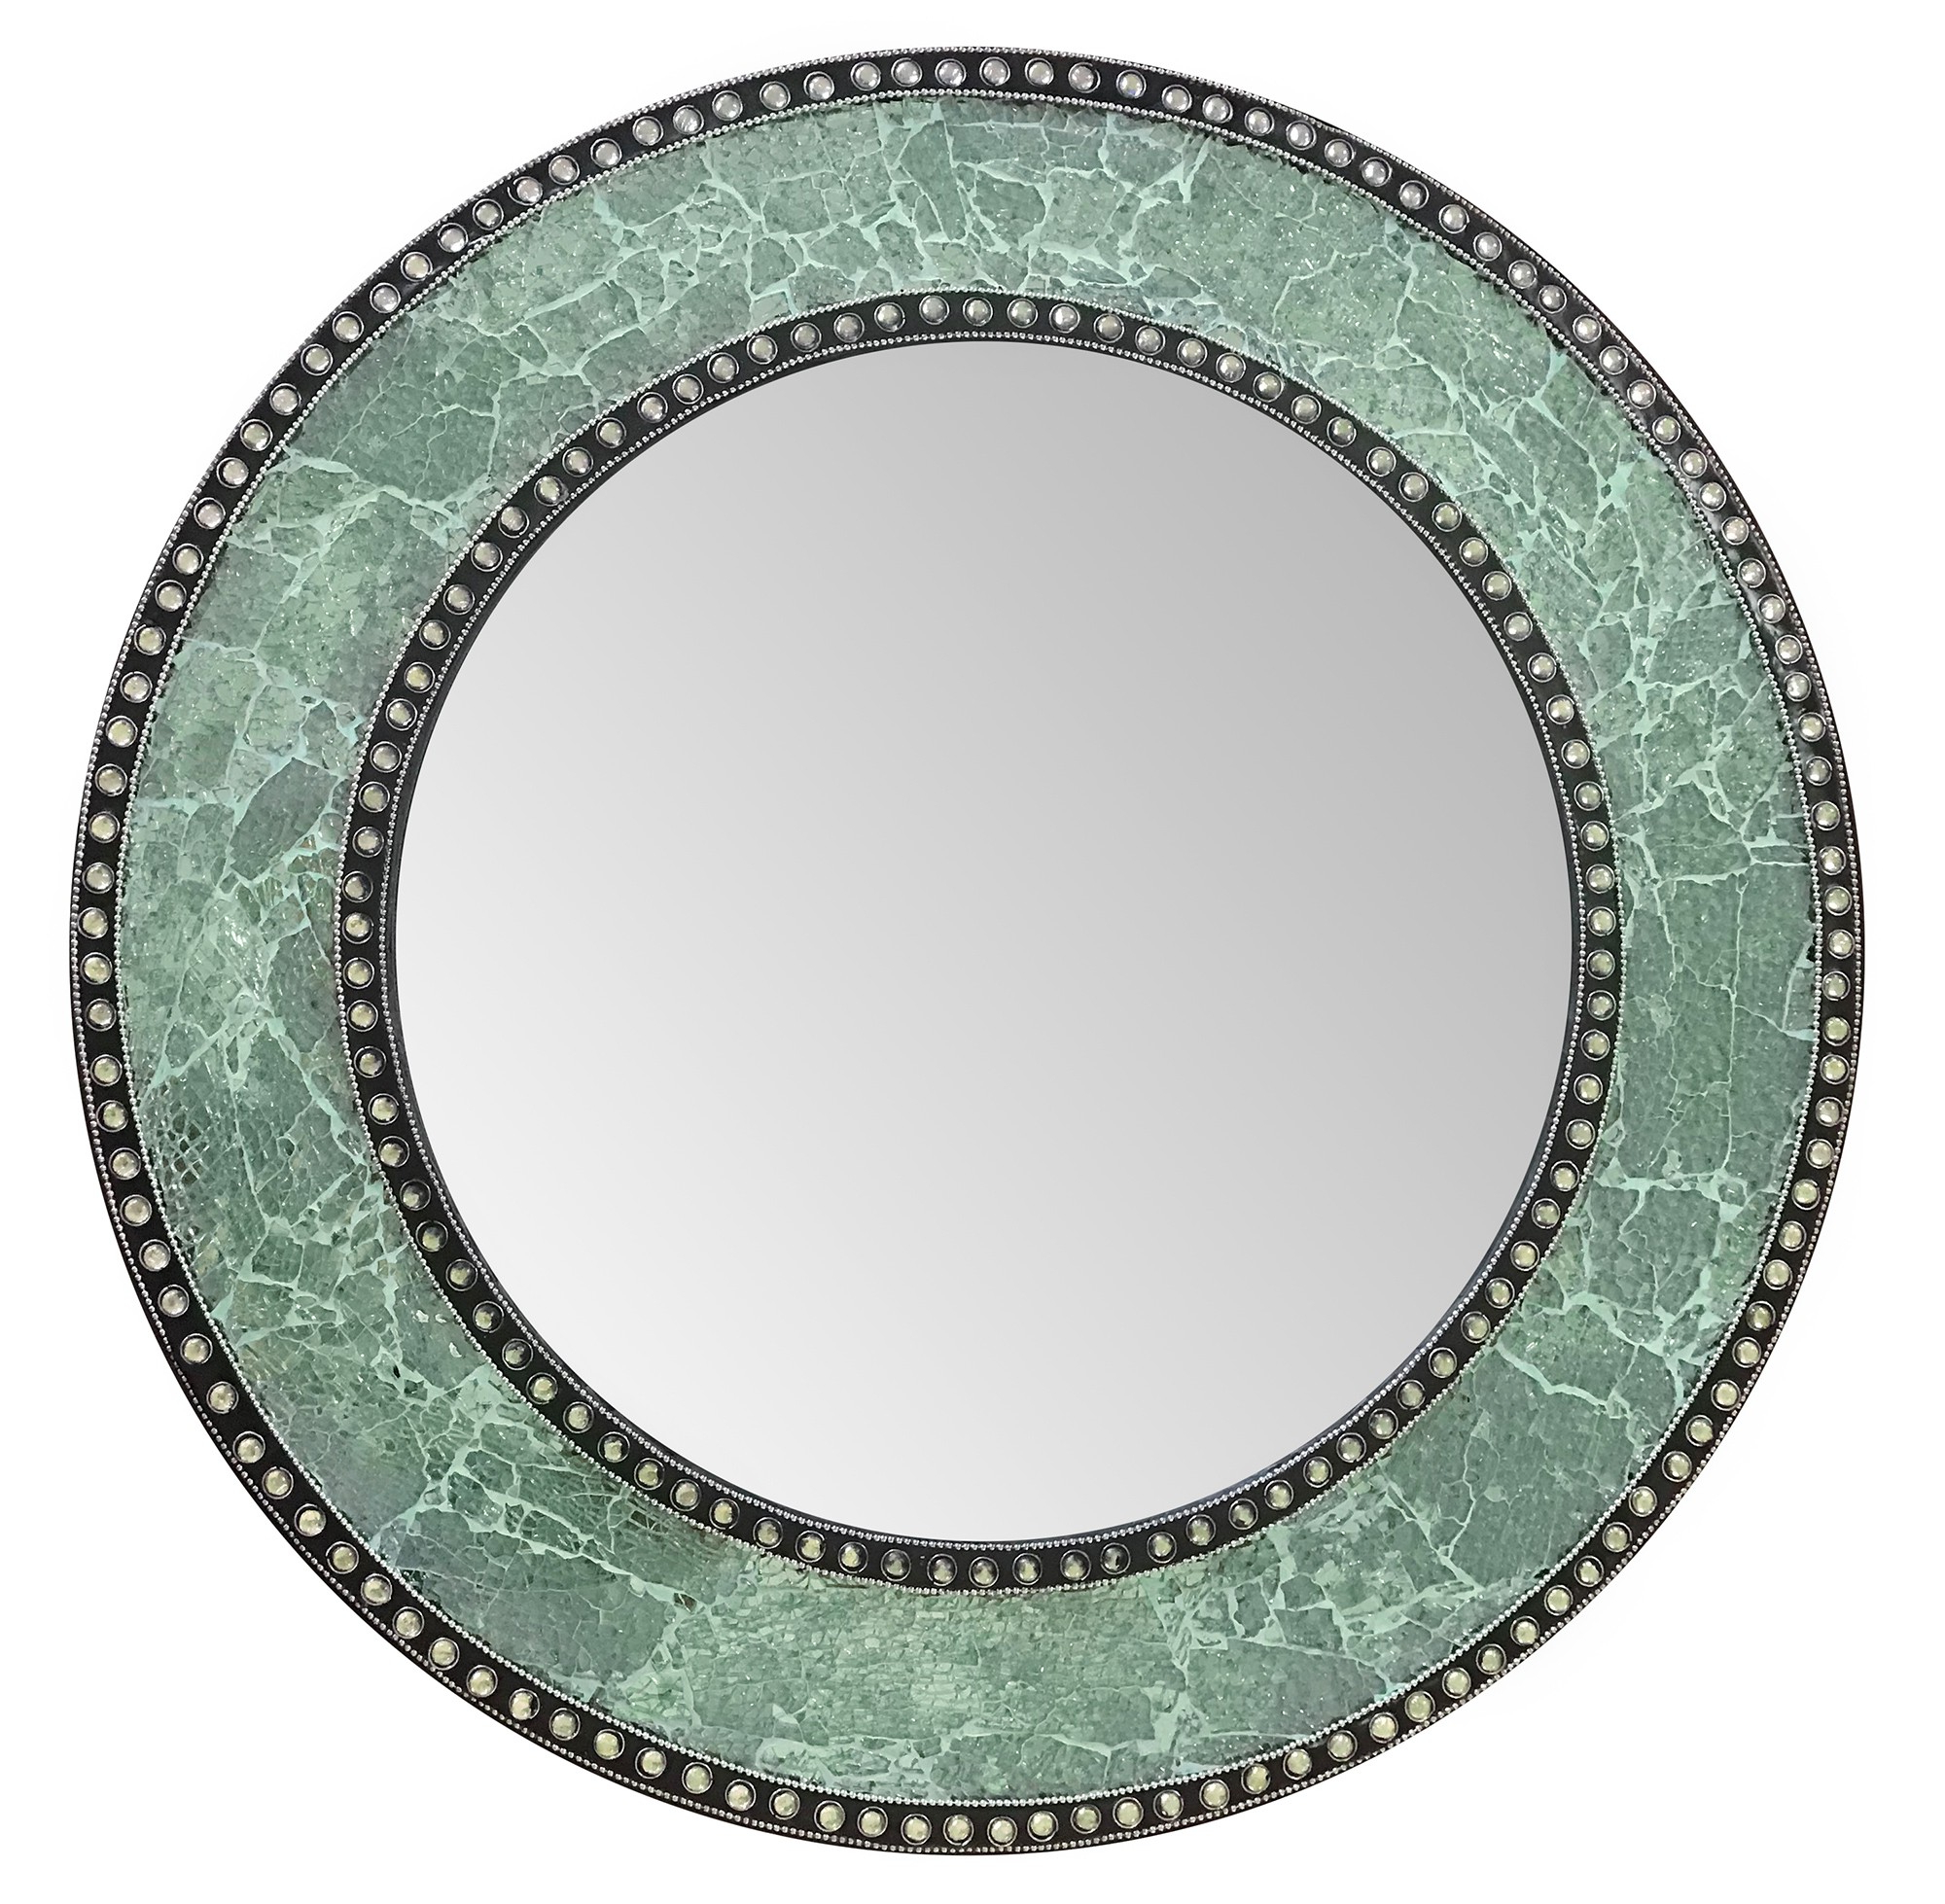 """24"""" Green Mosaic Decorative Handmade Crackle Glass Design Round Mosaic Accent Wall Mirrordecorshore Pertaining To Most Recently Released Round Mosaic Wall Mirrors (View 18 of 20)"""